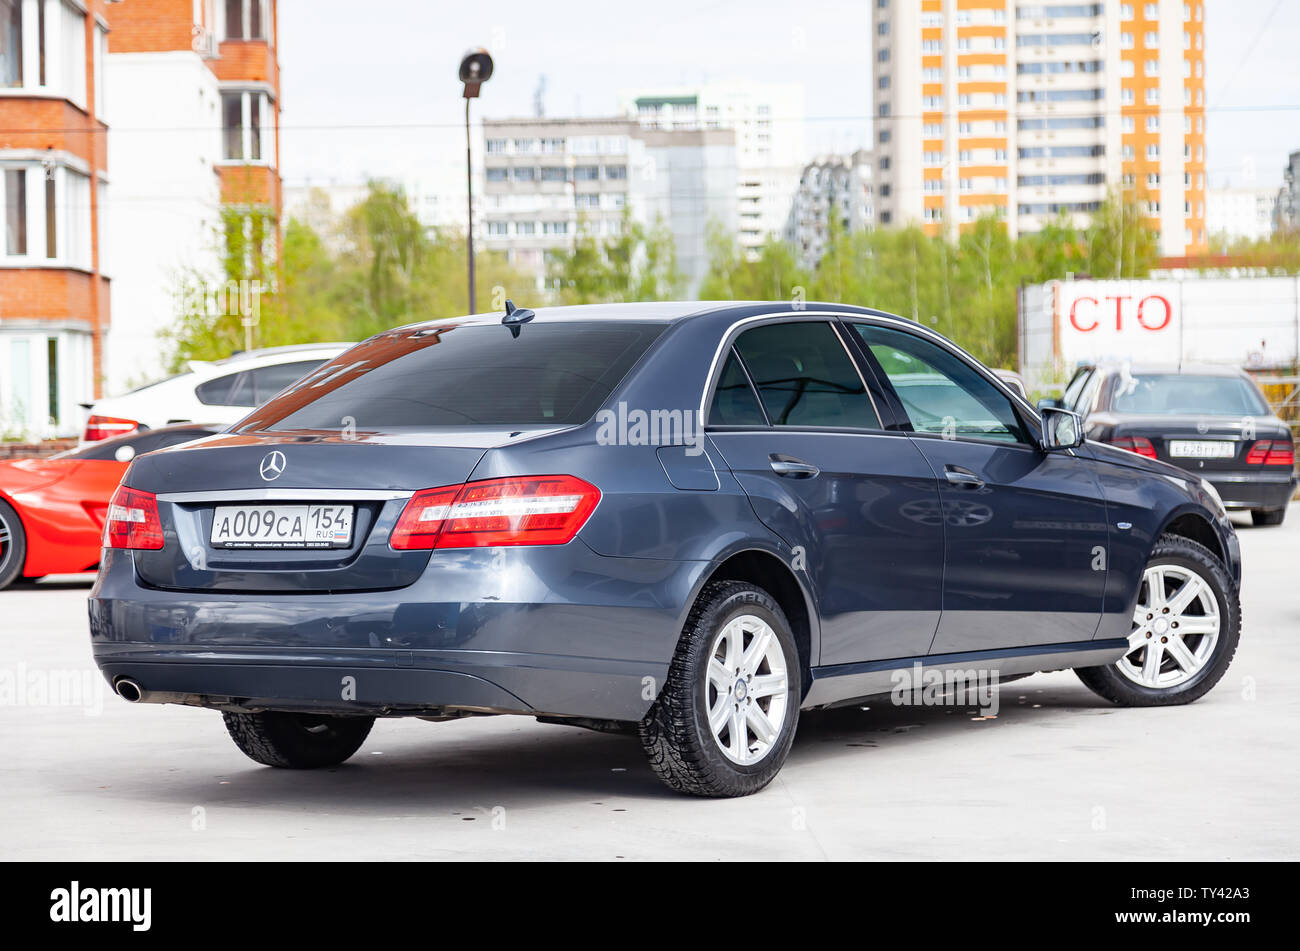 Novosibirsk Russia 05 13 2019 Gray And Blue Mercedes Benz E Class E200 2010 Year Rear View With Dark Gray Interior In Excellent Condition In A Par Stock Photo Alamy